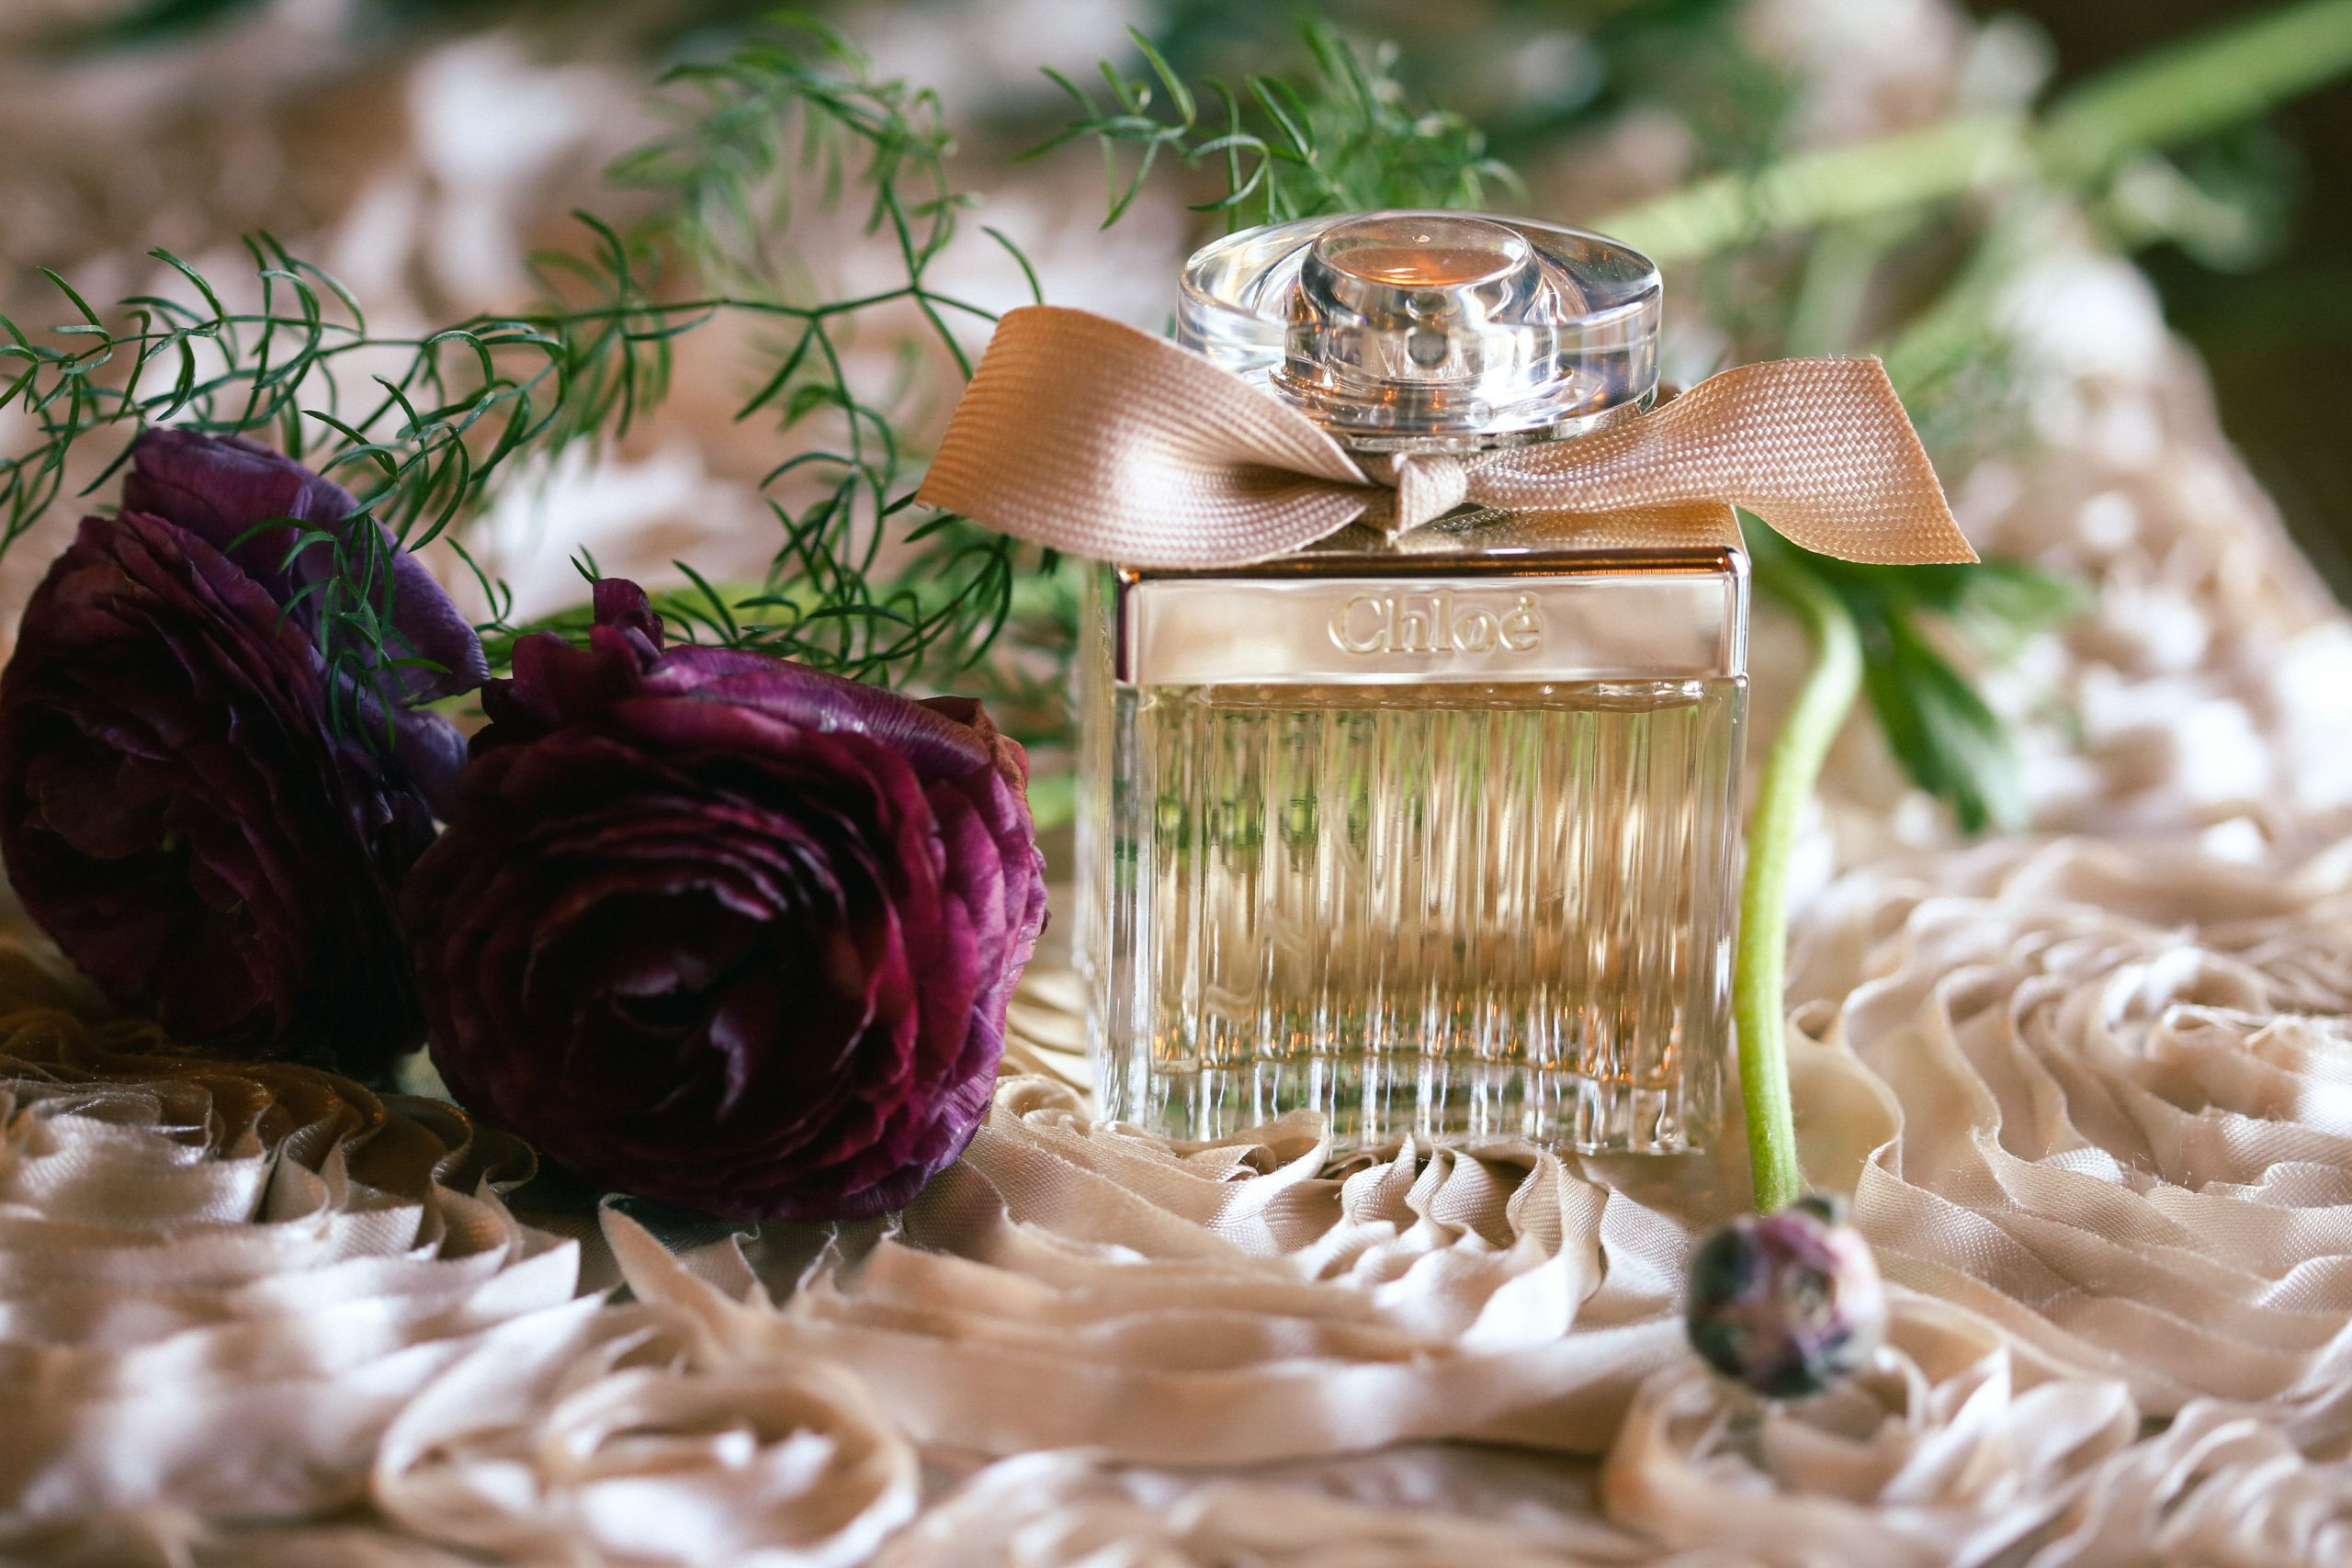 Here's some trendiest wedding inspiration to set the perfect mood for your wedding with these amazing ideas of fragrances!